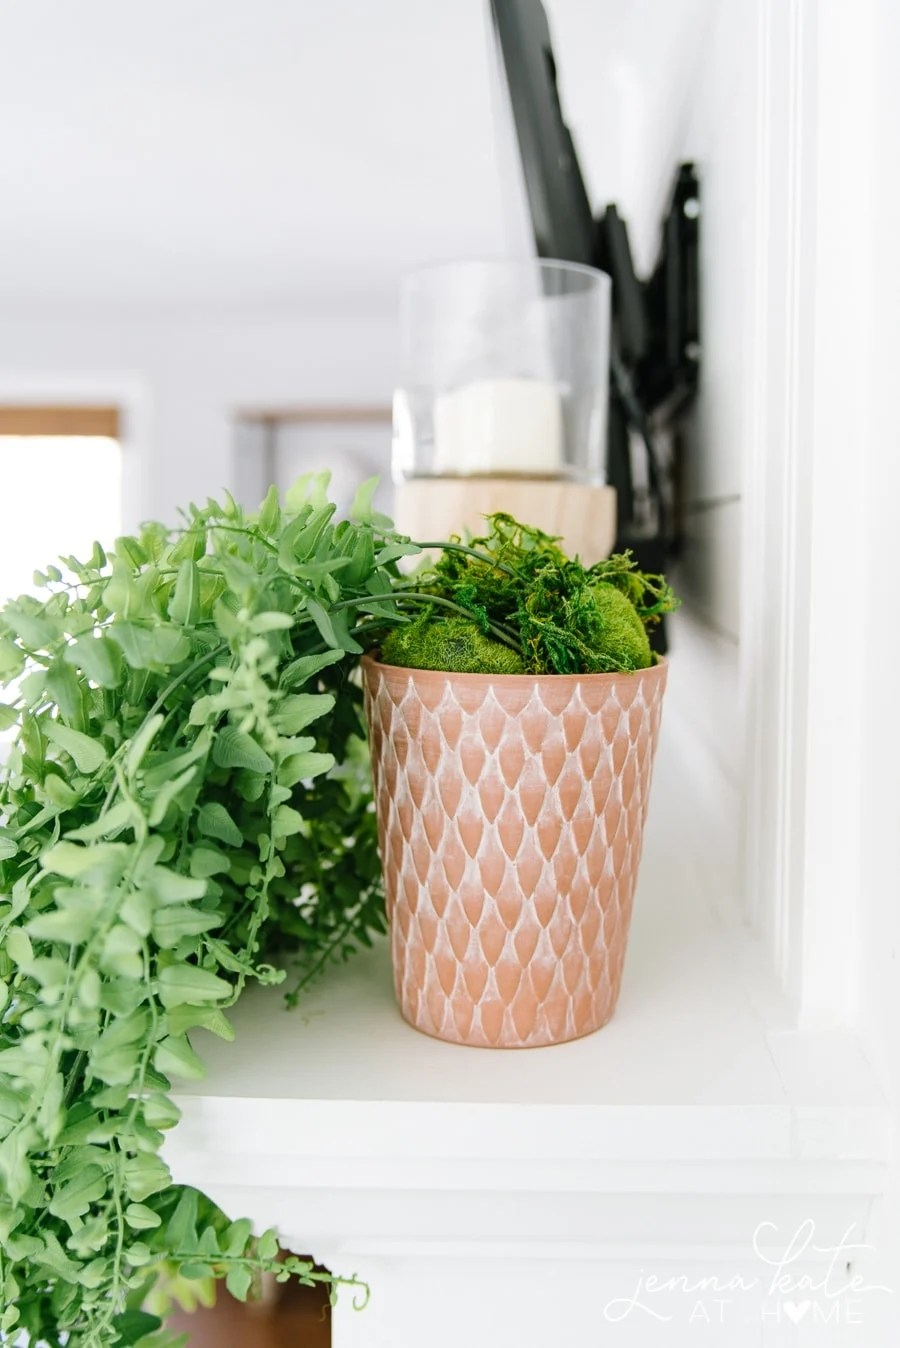 Faux moss and rocks help conceal the stems of your potted faux trailing plant